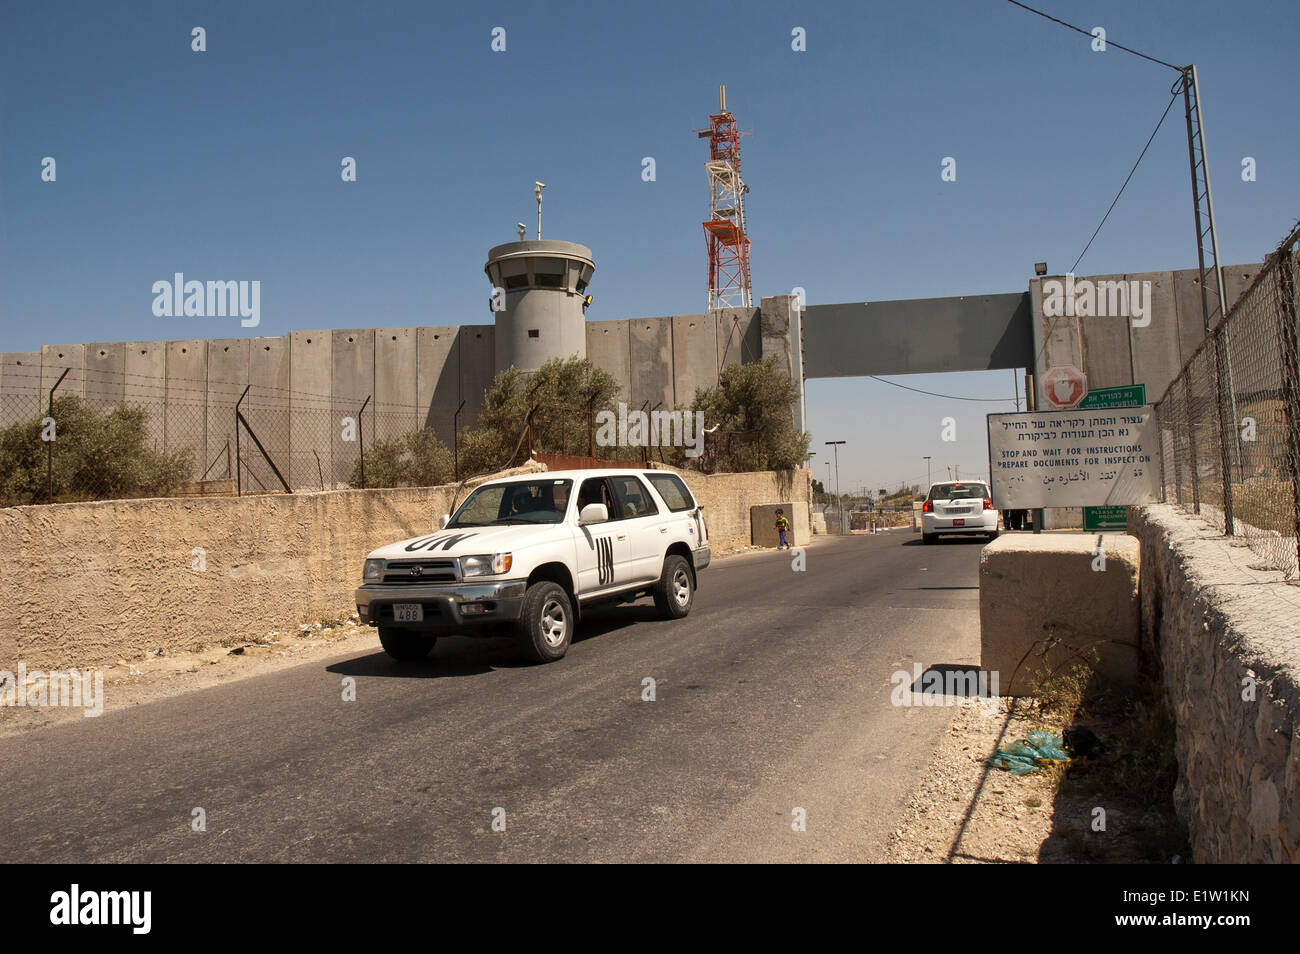 UN vehicle leaving the West Bank, Palestine Israel - Stock Image